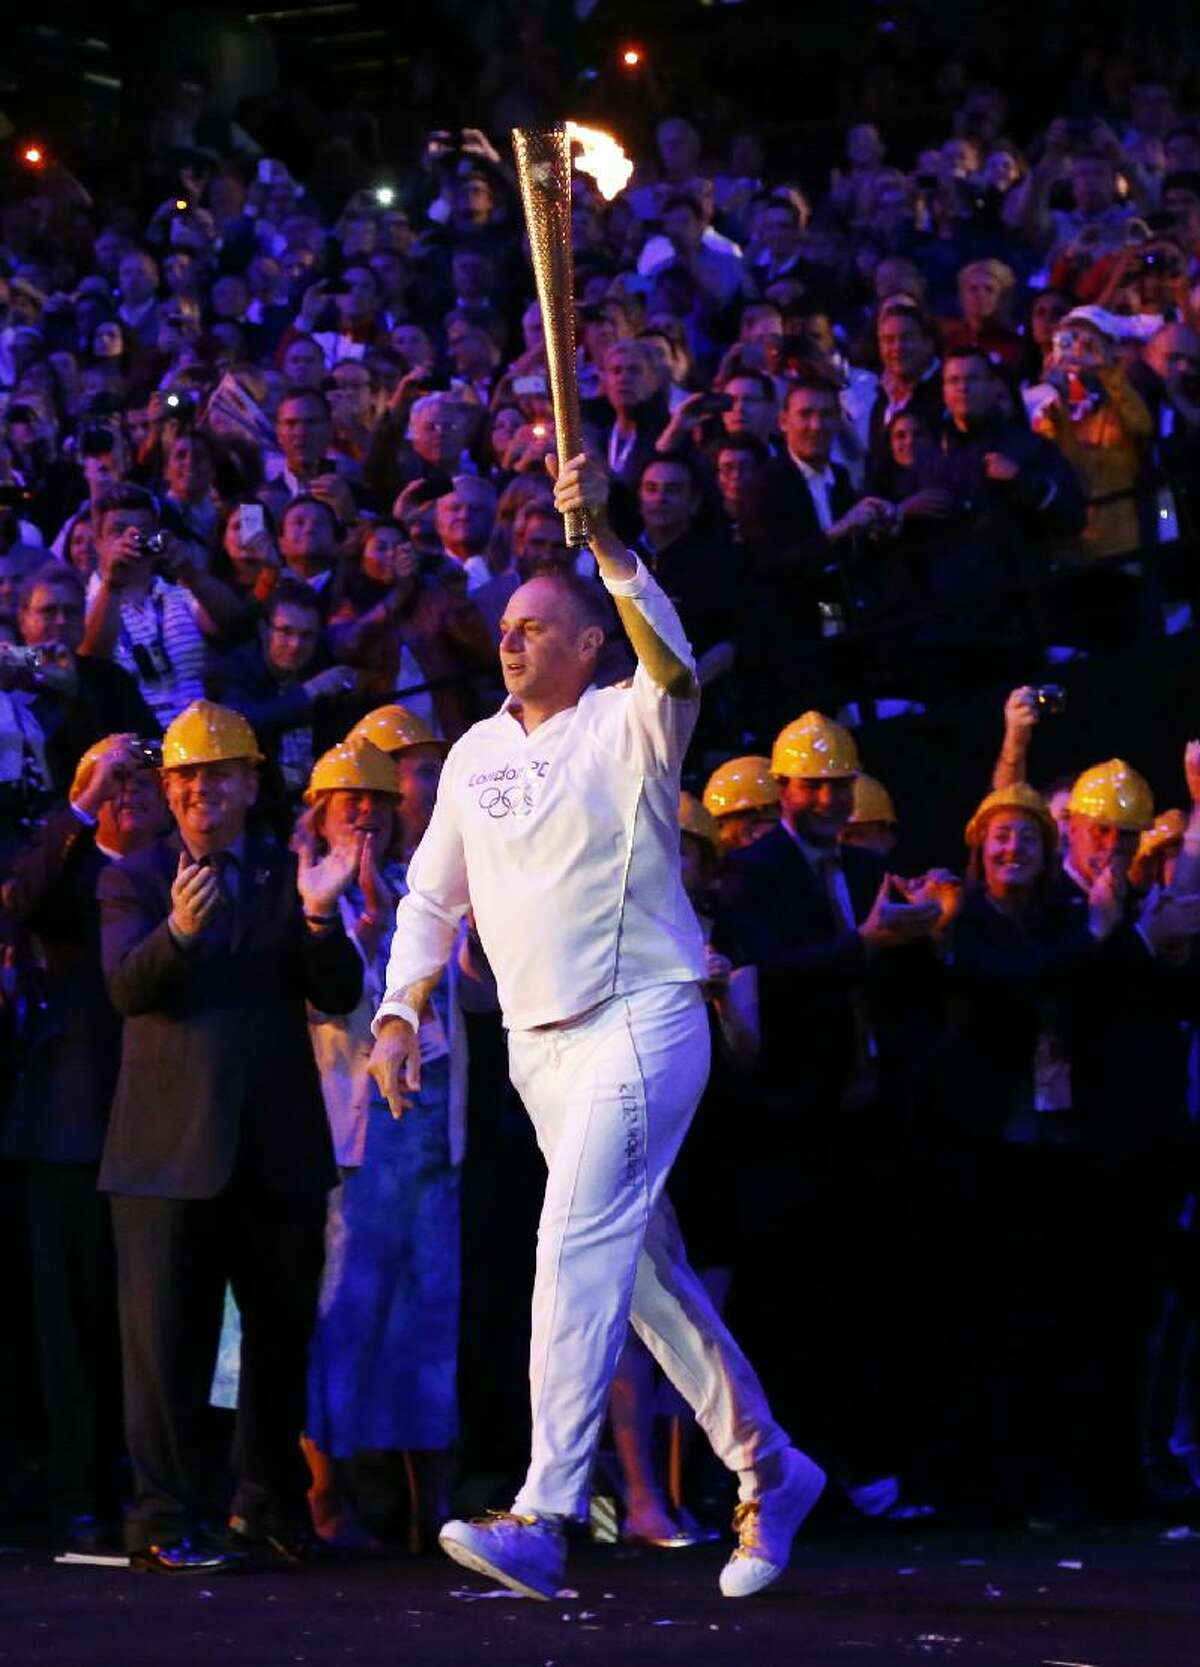 ASSOCIATED PRESS Steve Redgrave enters the Olympic stadium with the Olympic flame during the Opening Ceremony at the 2012 Summer Olympics on Saturday in London.